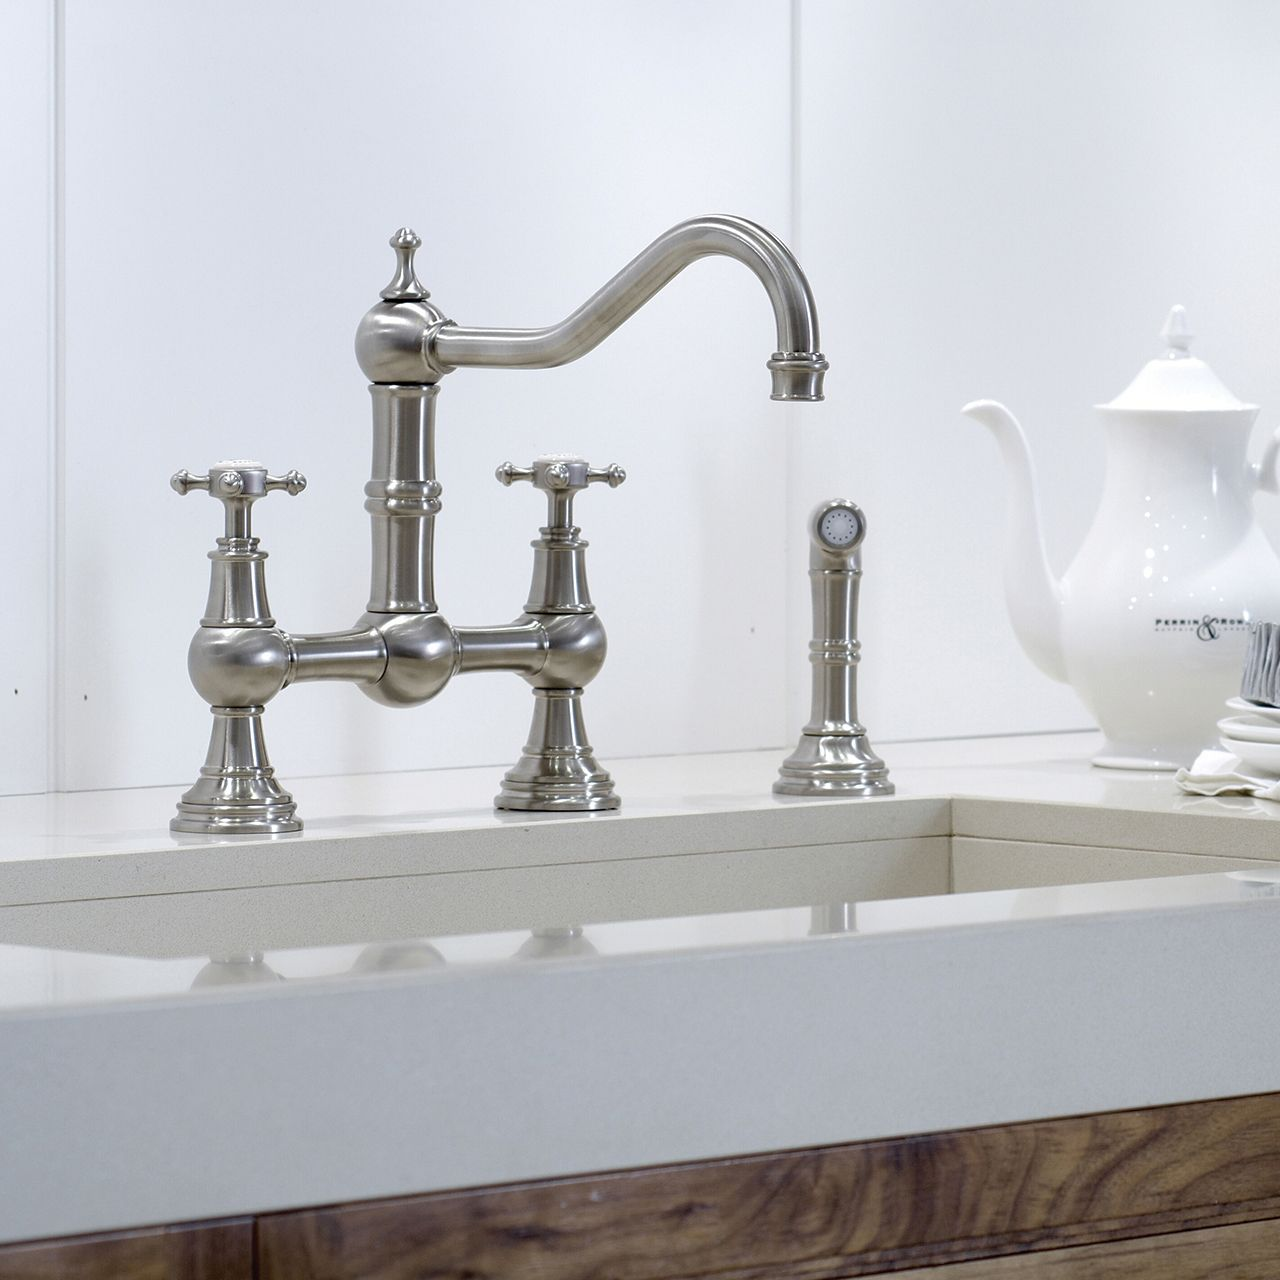 Traditional kitchen taps Provence three hole sink mixer with ...